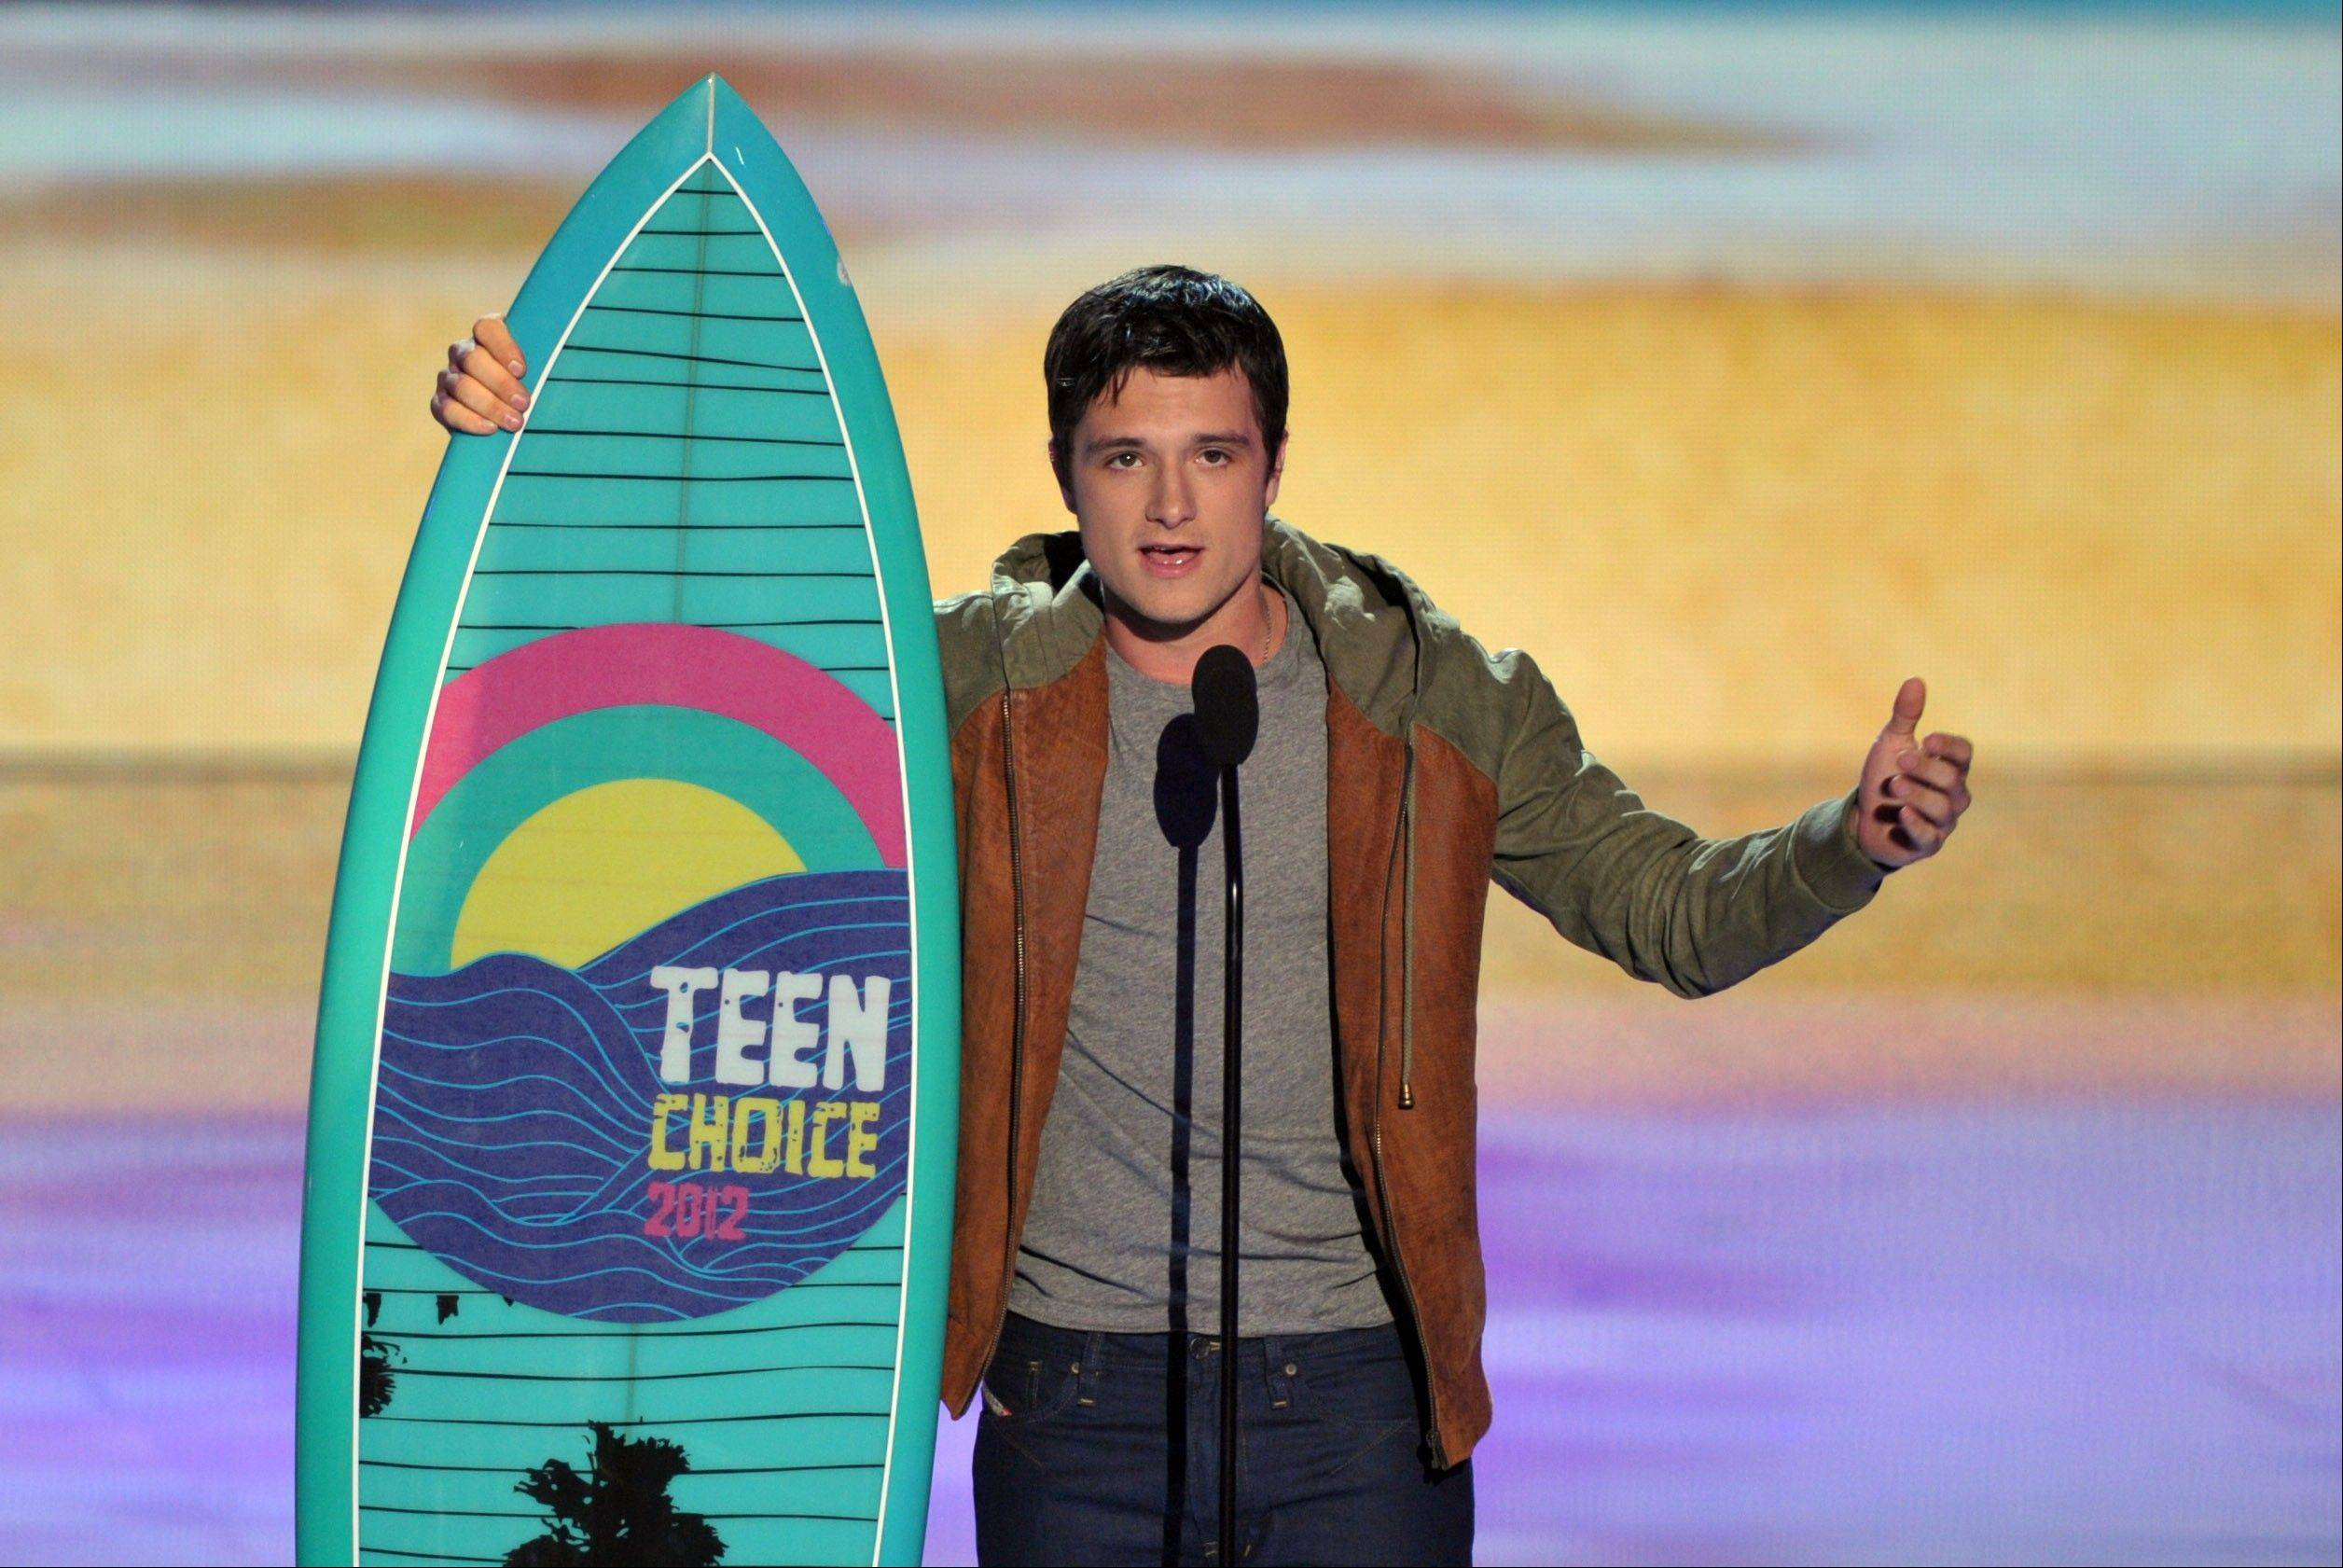 Josh Hutcherson accepts the award for choice movie actor: sci-fi/fantasy at the Teen Choice Awards on Sunday.